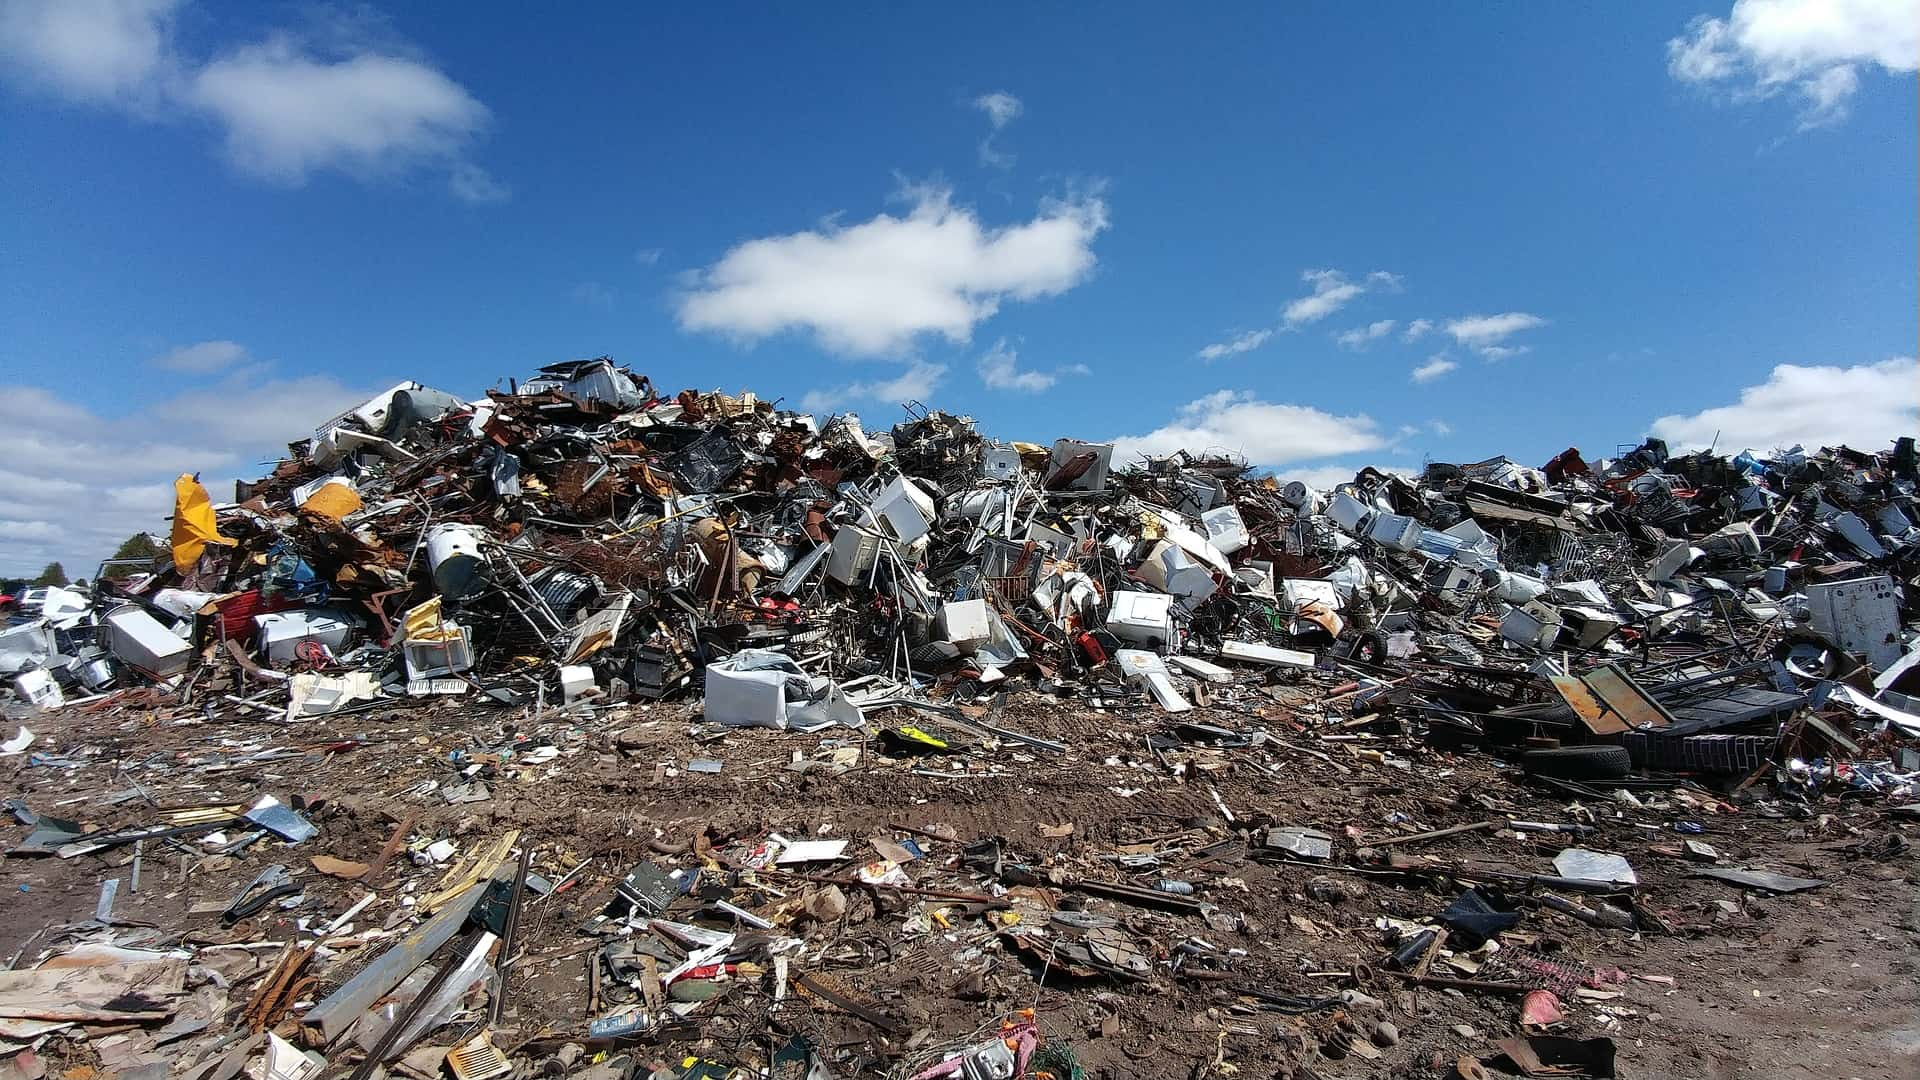 Recycling Plastic Building Materials: PVC vs. HDPE